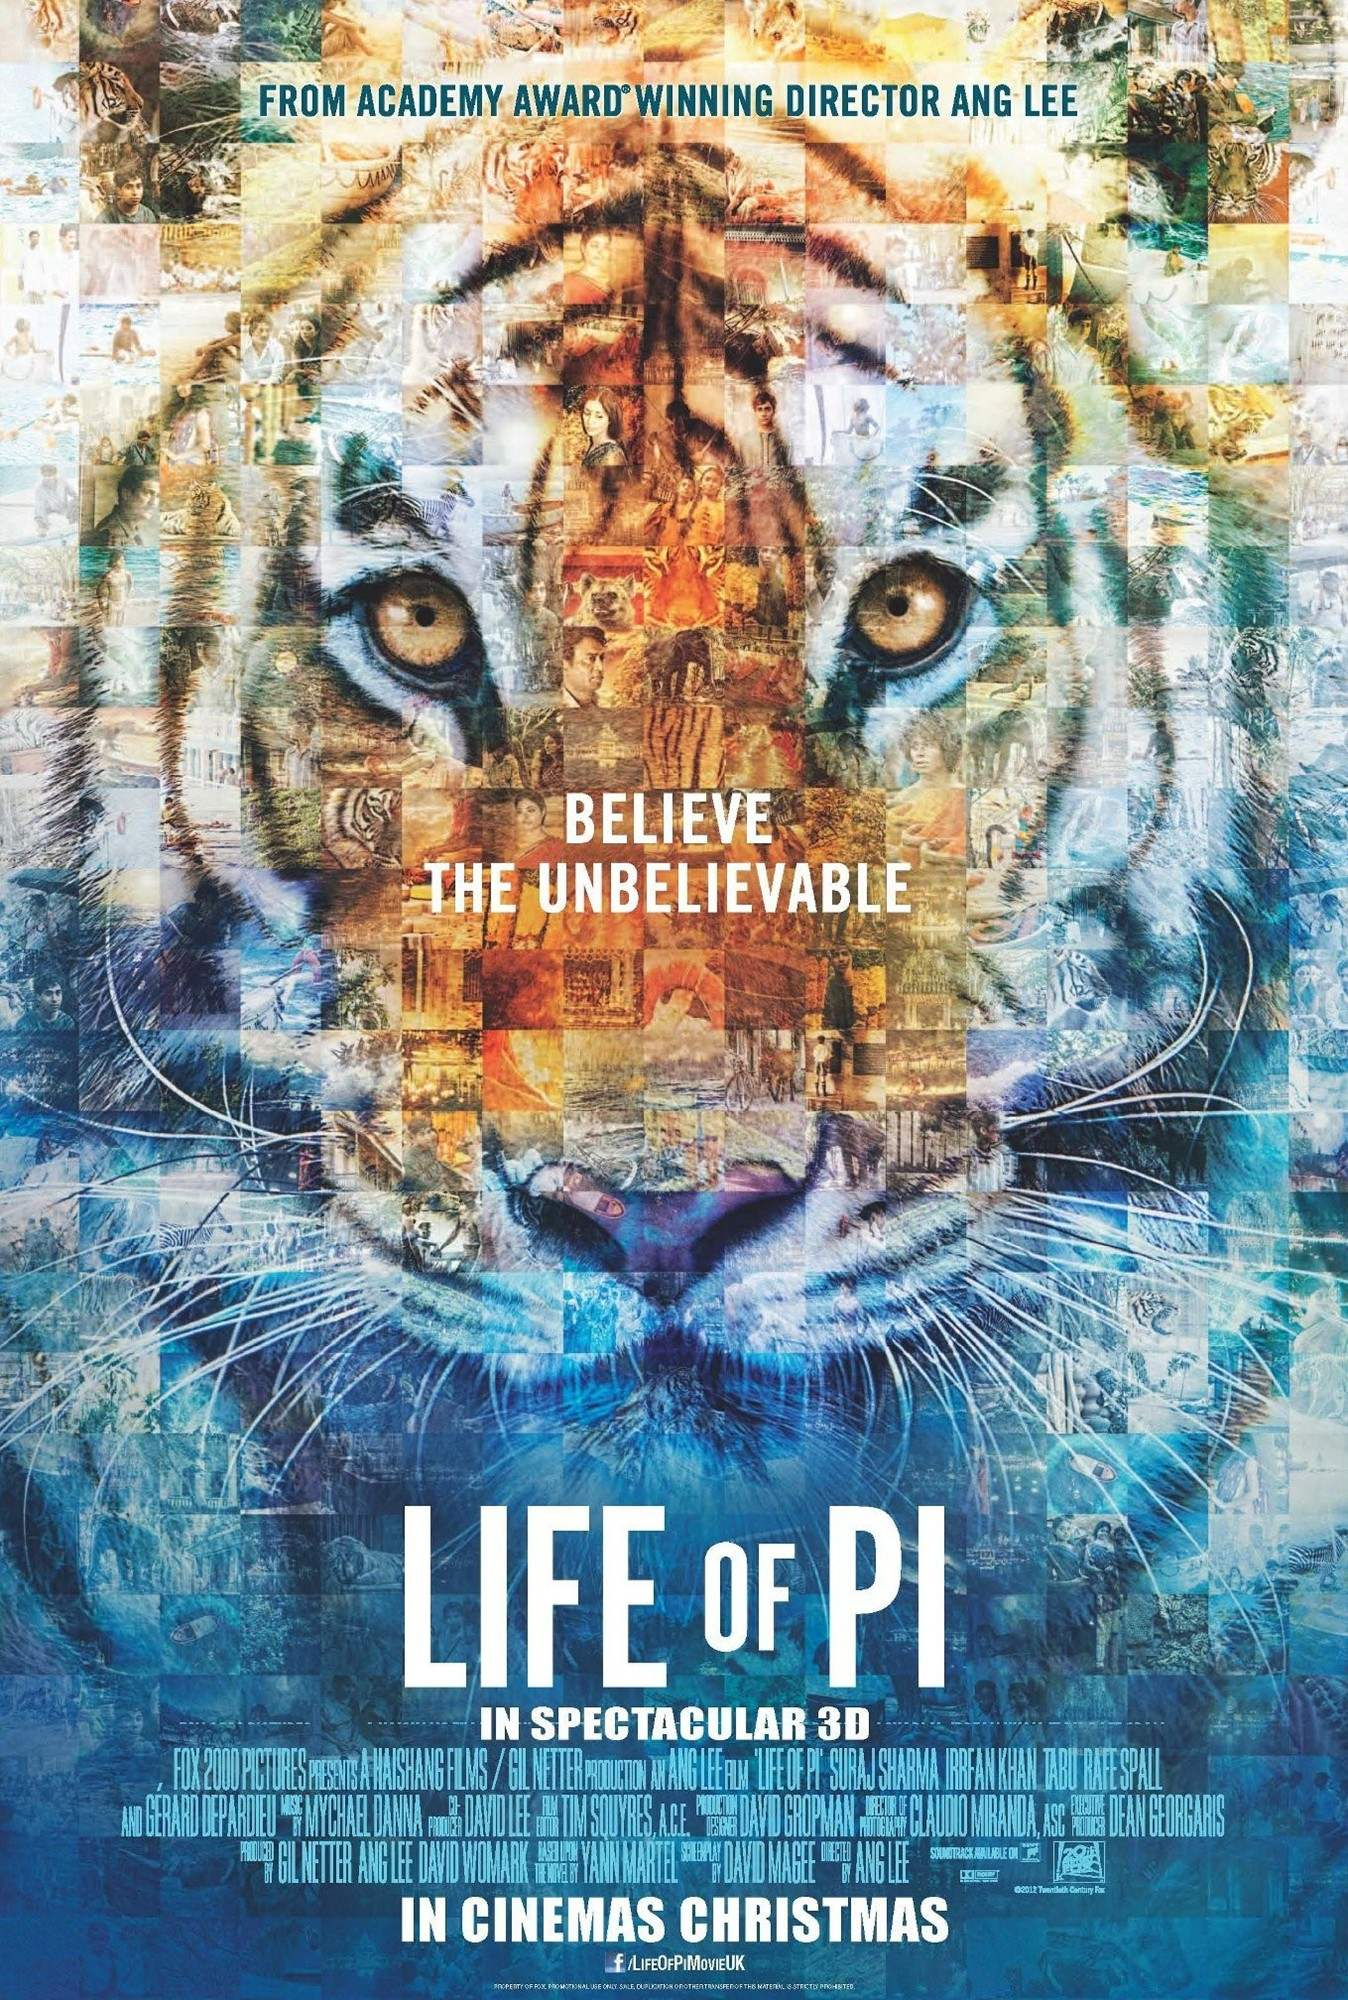 The life of pi 2012 ang lee the mind reels for Life of pi cast